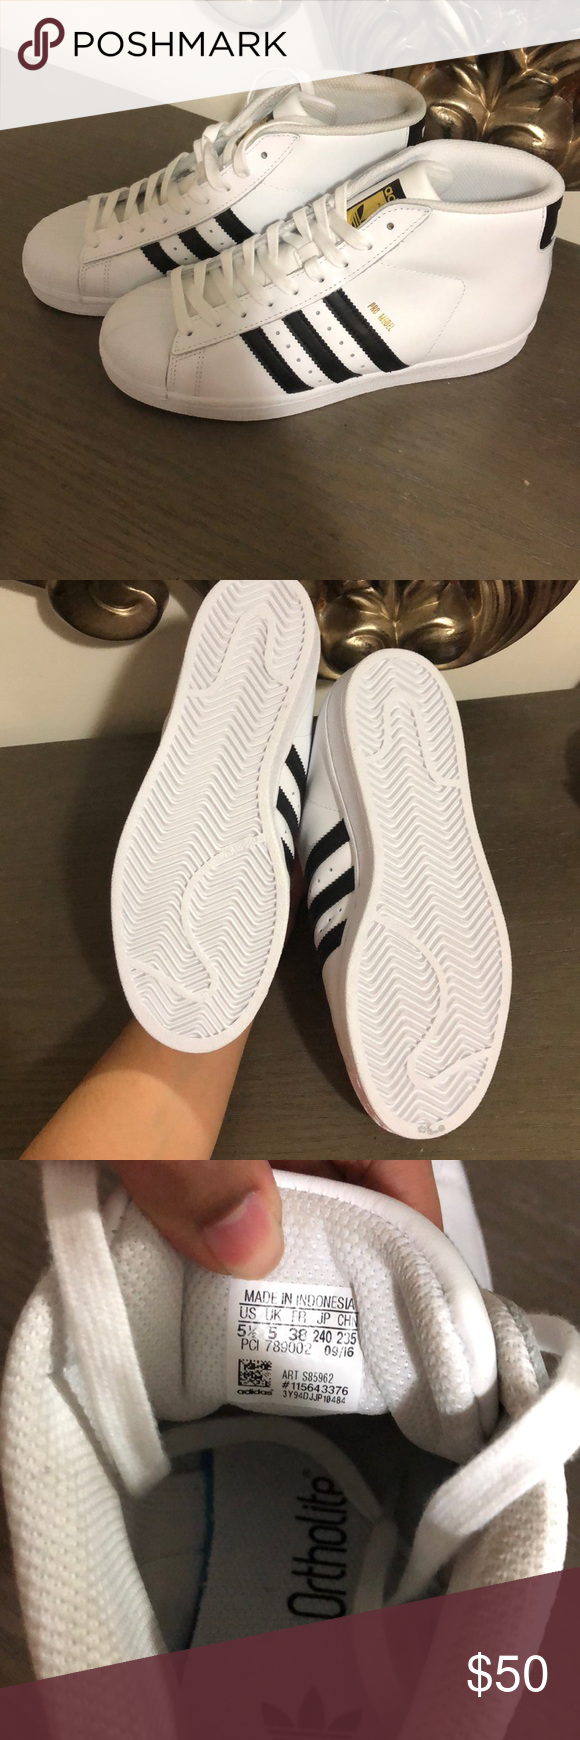 Adidas Sneakers Brand new. They are dirty from my 3 year old trying them in  with her shoes 🙄 size 5.5 boy fits a size 8 women No box adidas Shoes  Sneakers cc9029ccc4